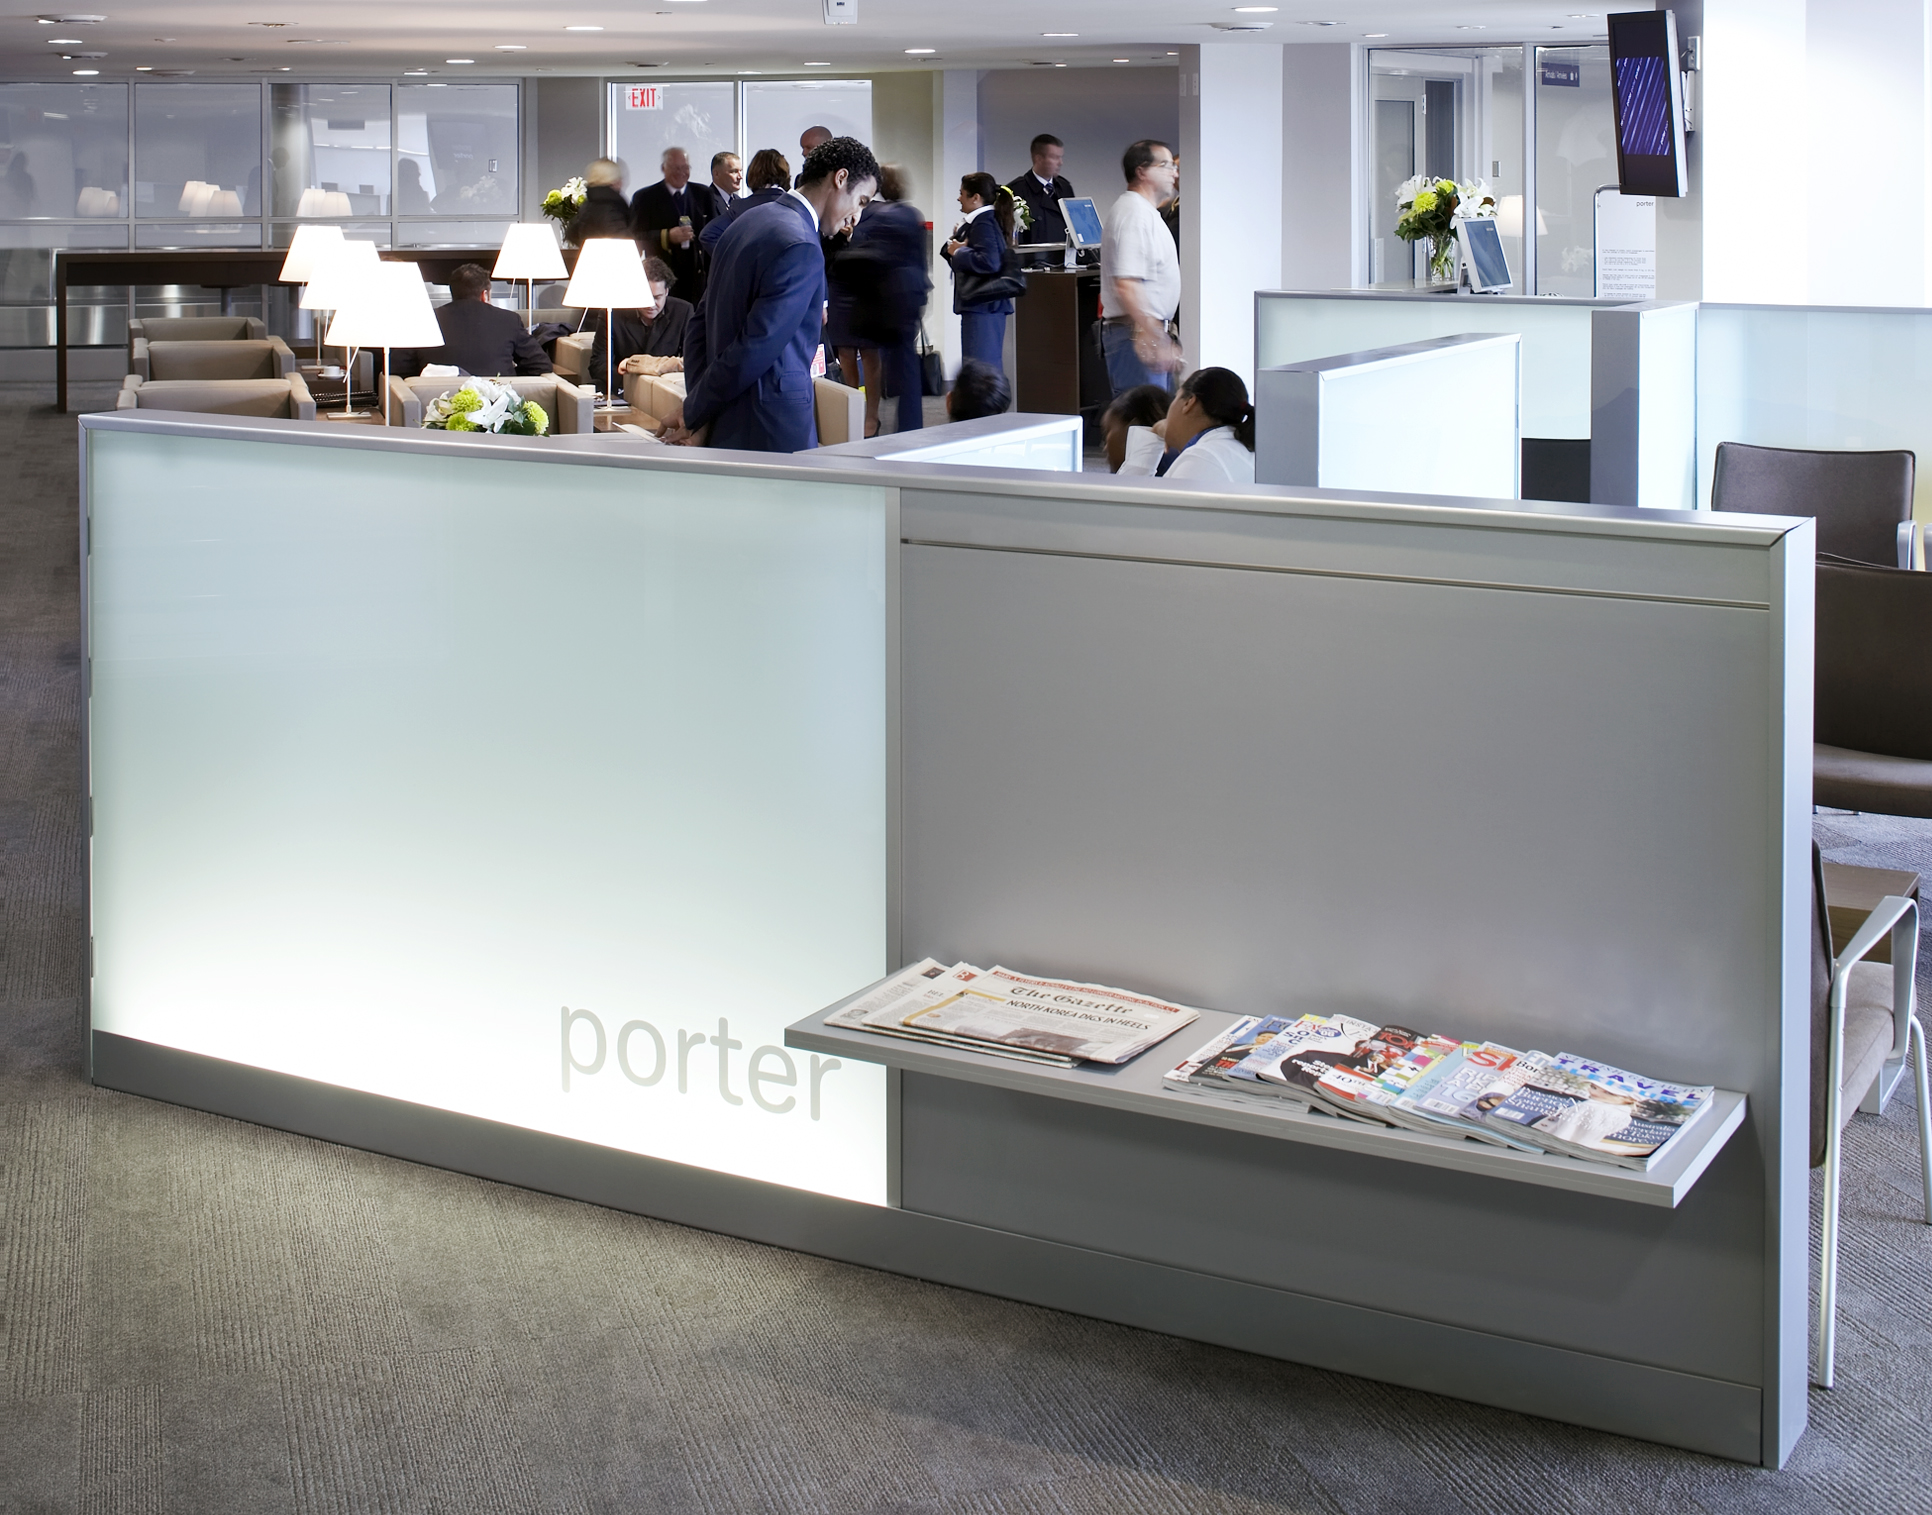 Porter lounge with dividing wall and seating